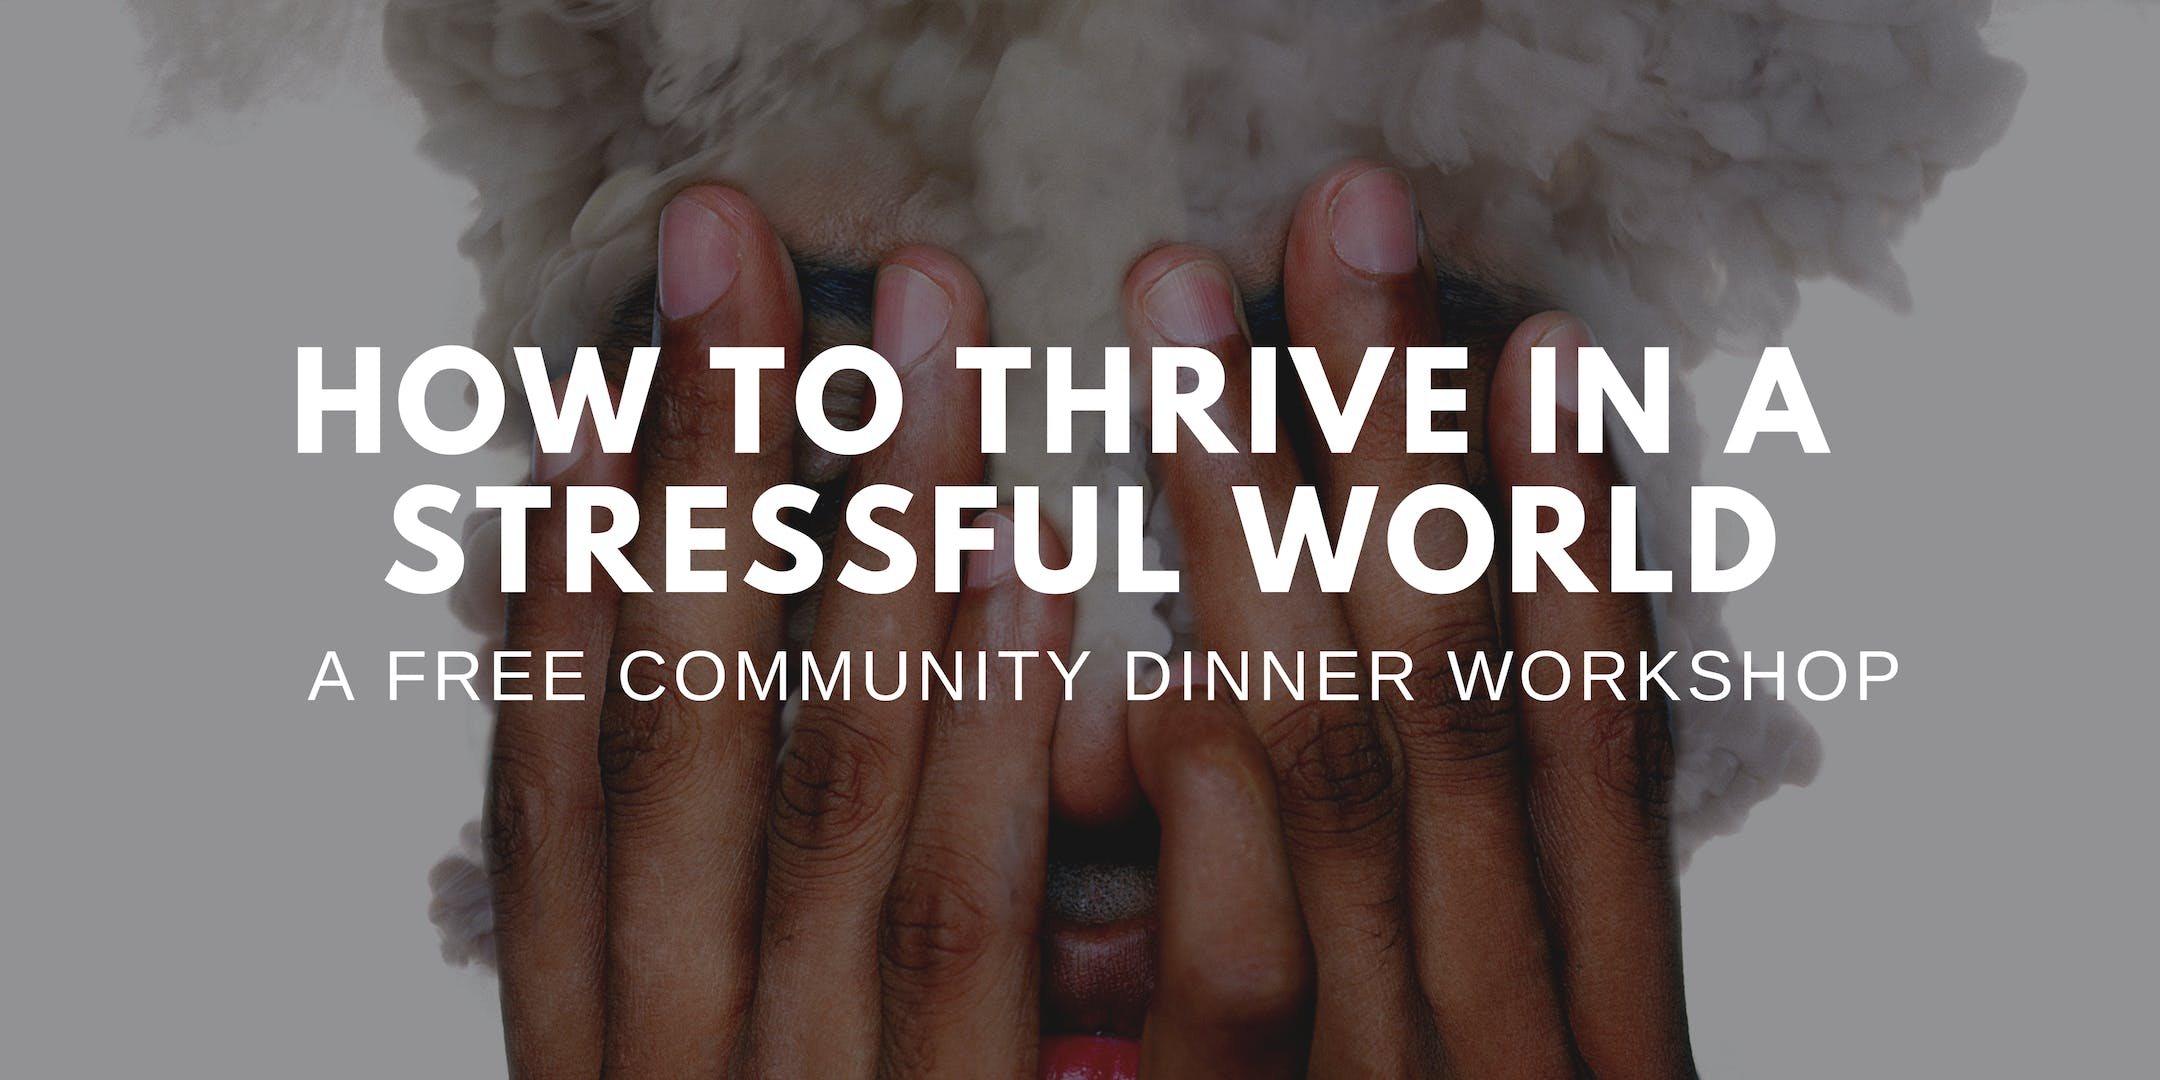 How to Thrive in a Stressful World